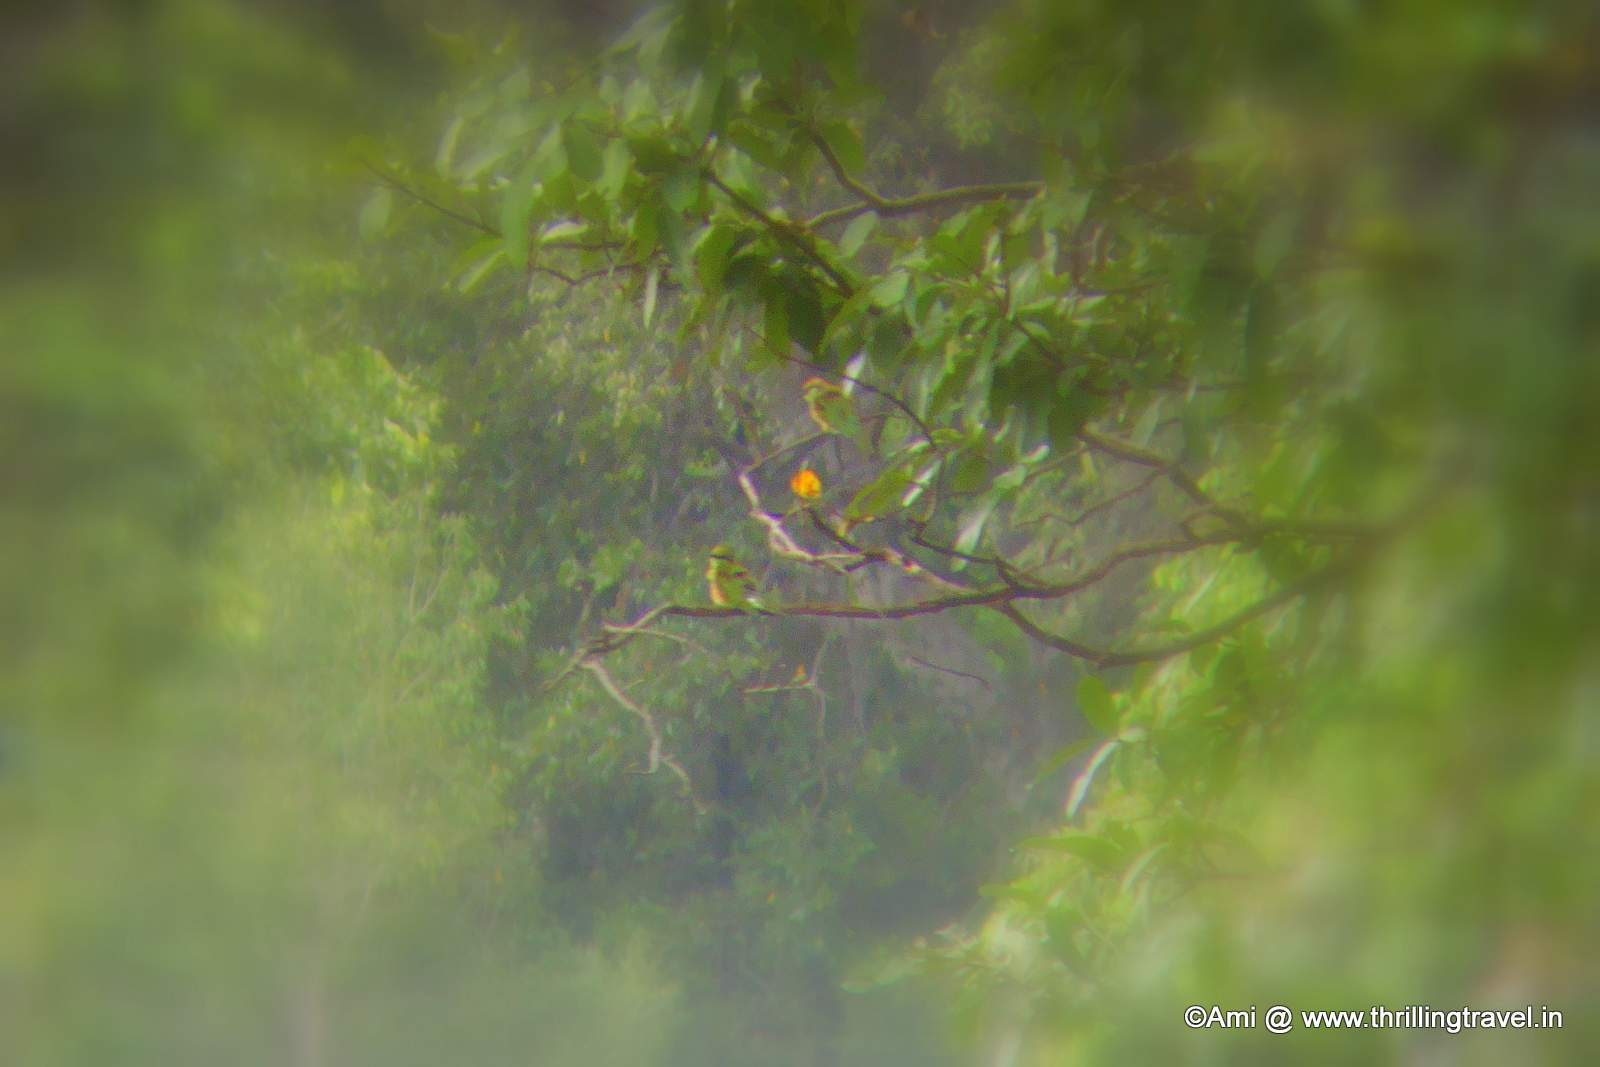 Birds through the binoculars at the Bheemeshwari Fishing Camp